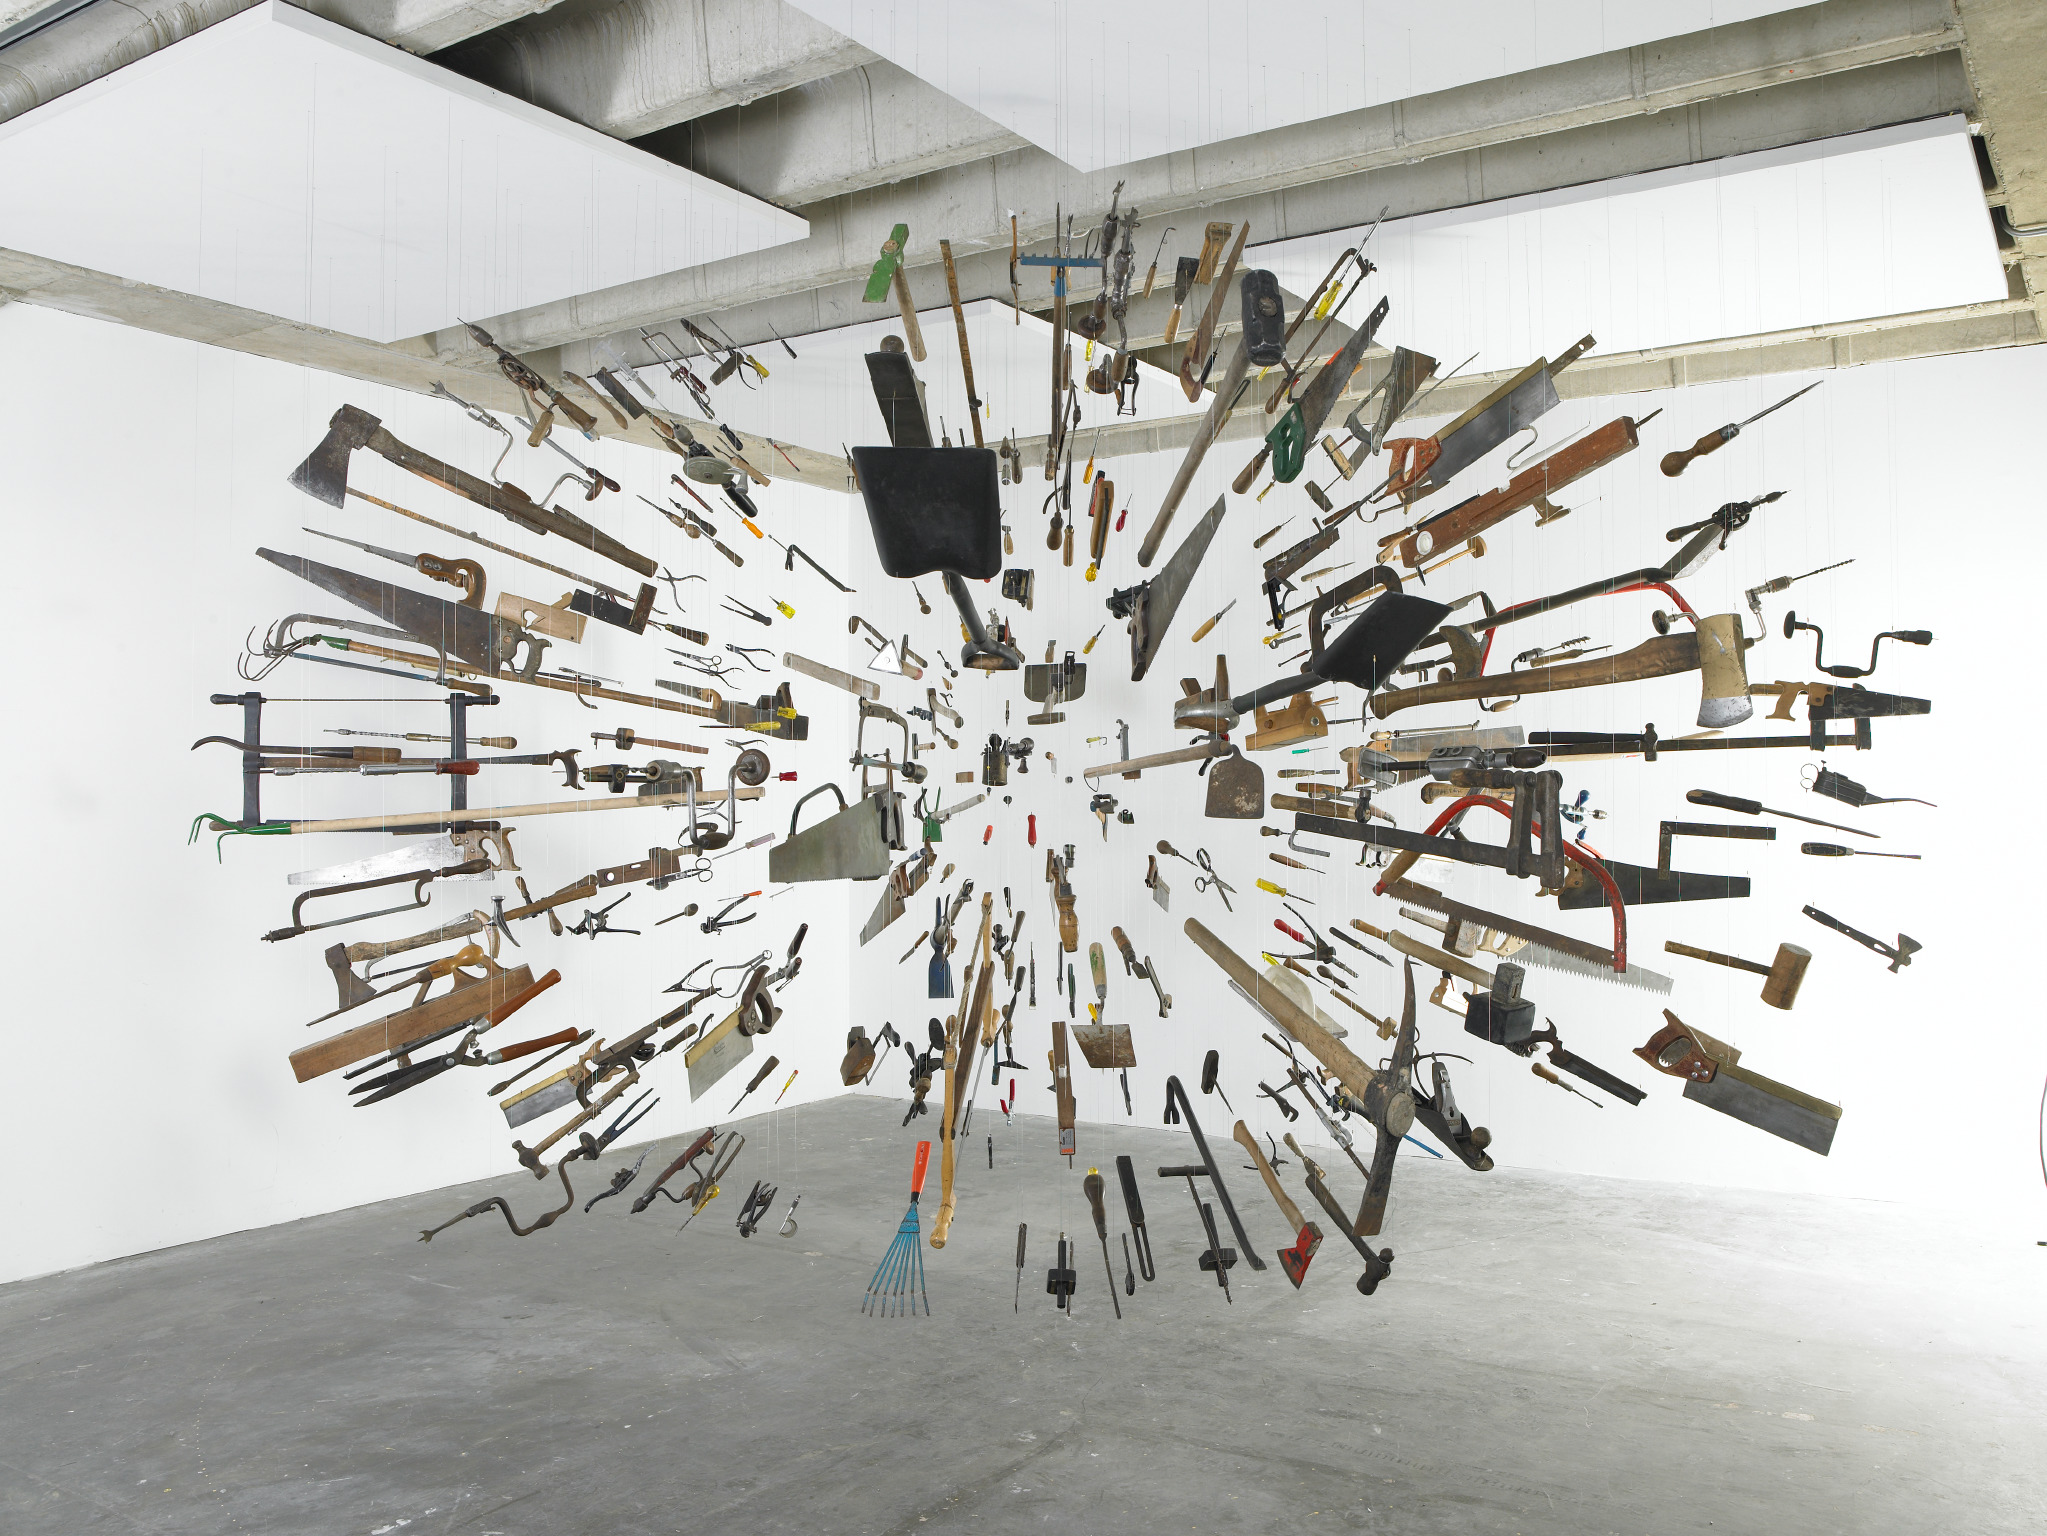 Controller of the Universe, 2007. Courtesy of the artist and White Cube, London